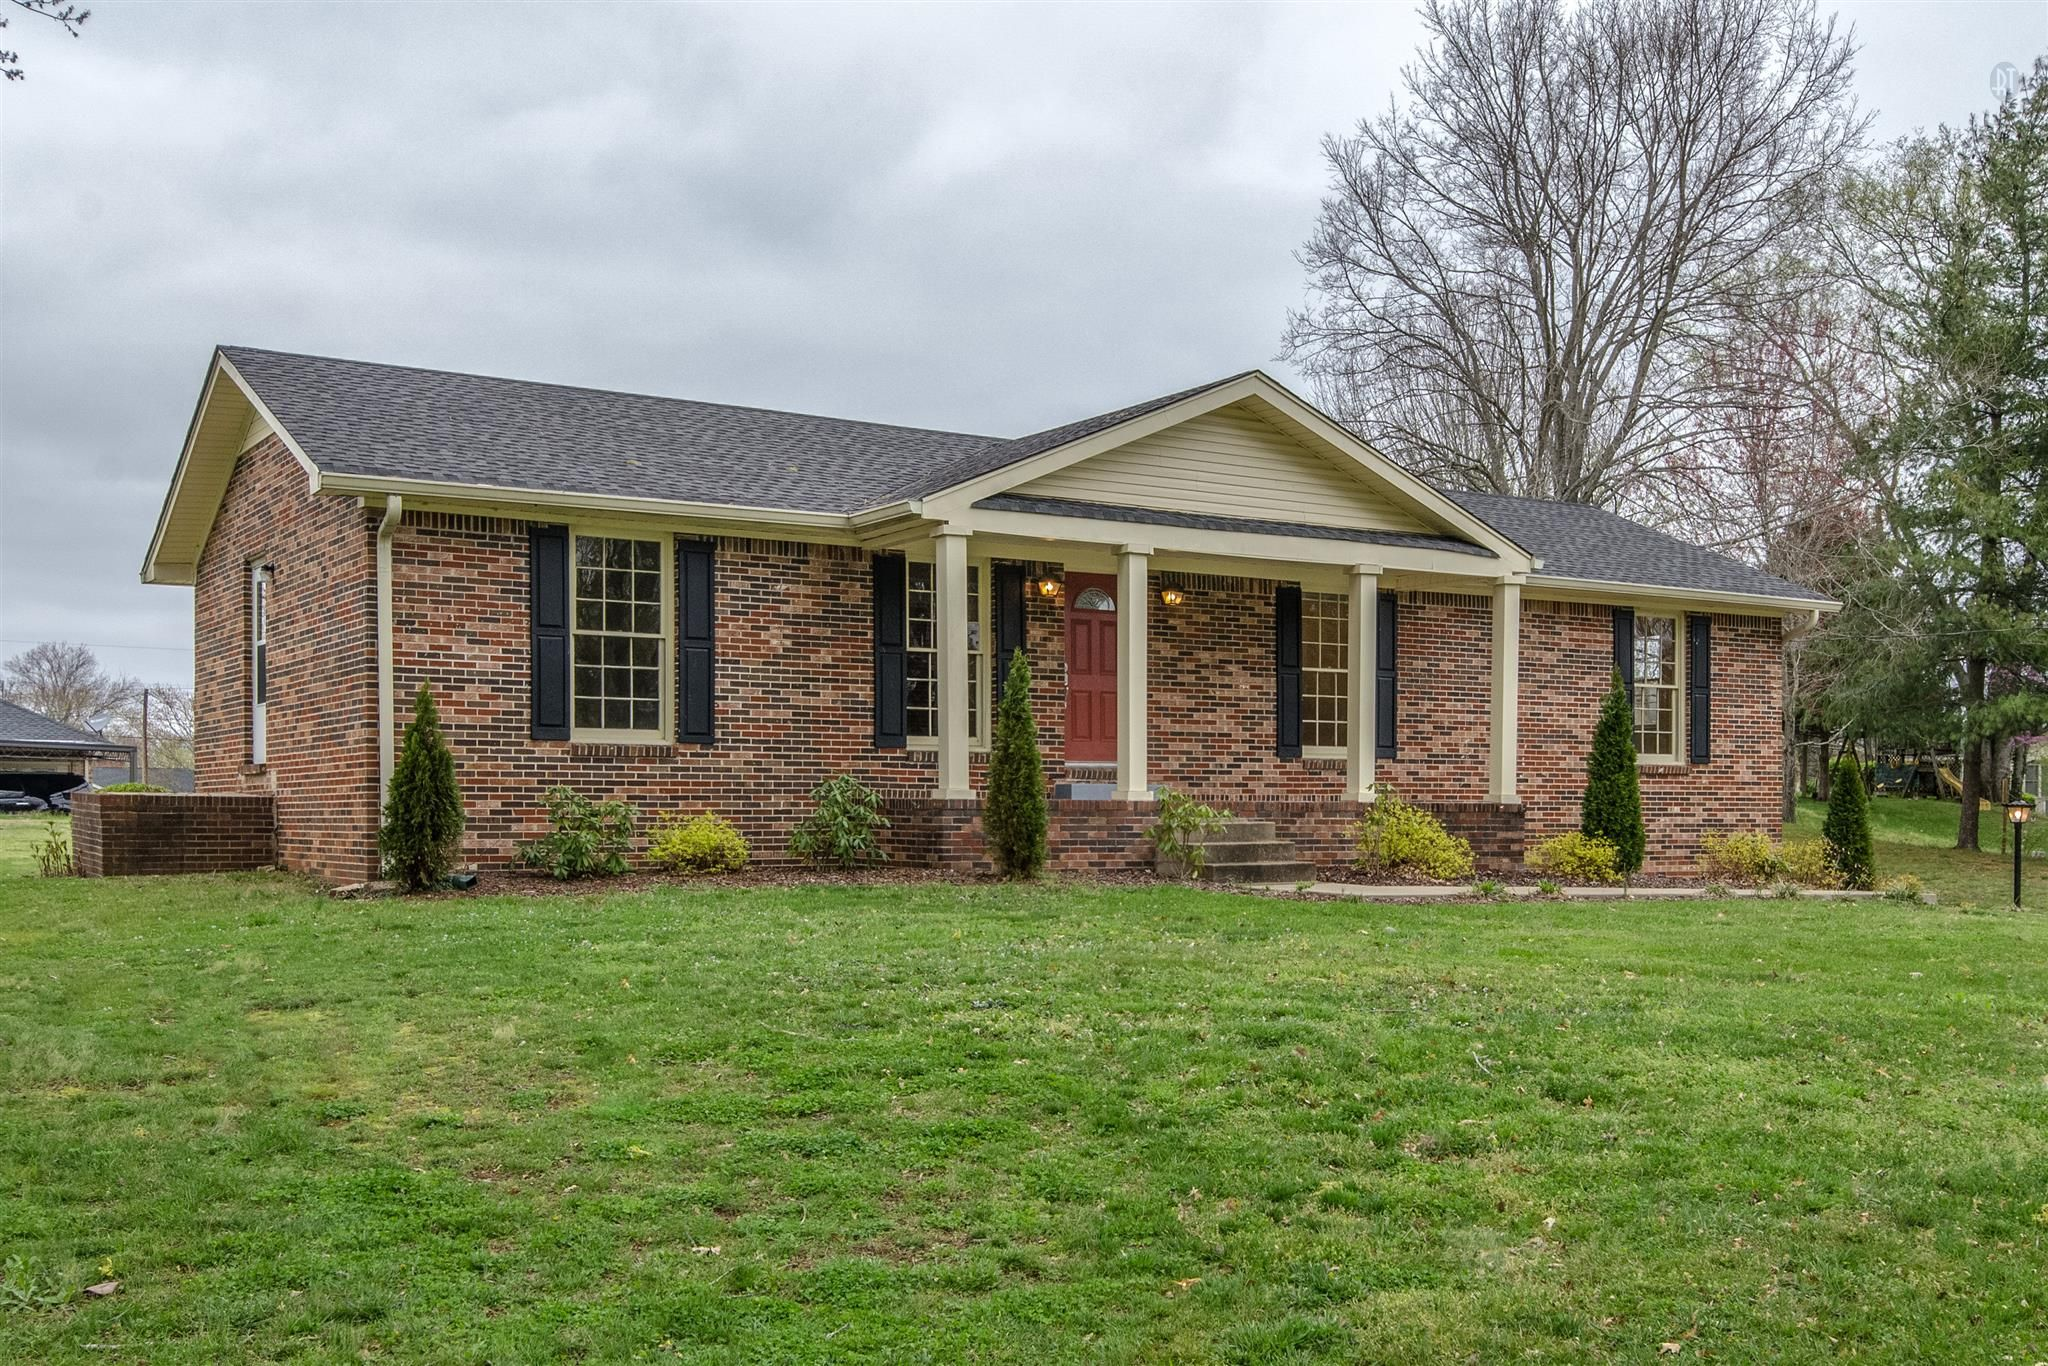 1410 Towson Dr Columbia Tn Property Details Search Spring Hill Tn Homes Estate Homes House Styles Property